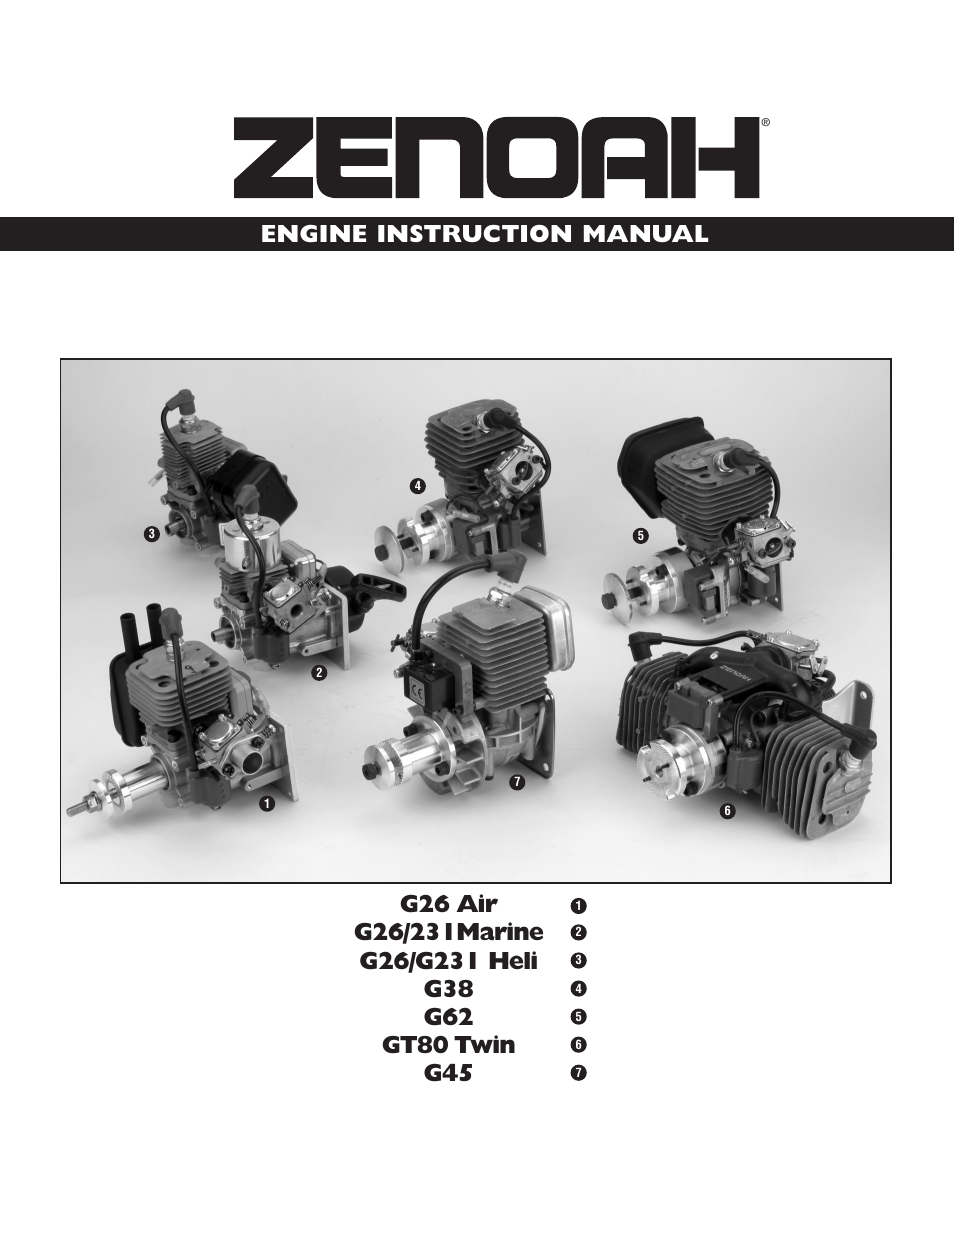 Zenoah G26 AIR User Manual   24 pages   Also for: G26/231MARINE, G26/G231  HELI, G38, G62, GT80 TWIN, G45